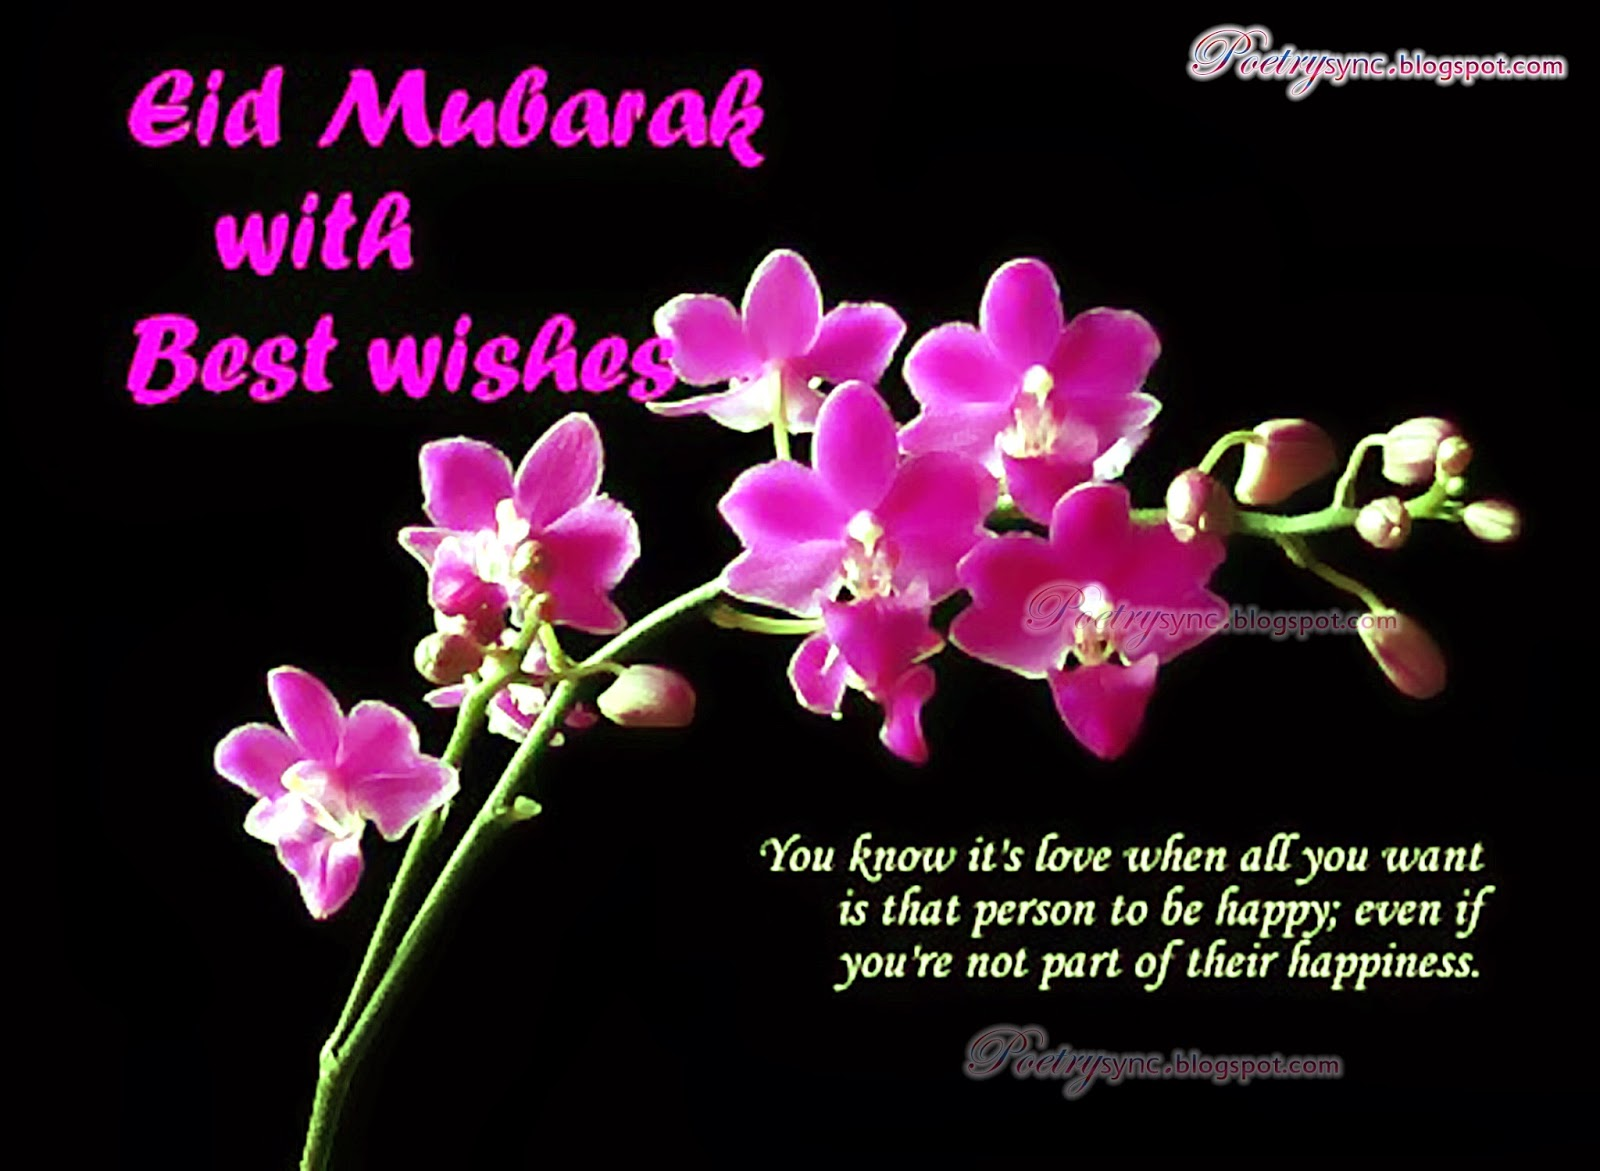 Eid mubarak quotes hd wallpapers 2015 nation of friendships eid mubarak quotes hd wallpapers 2015 kristyandbryce Gallery